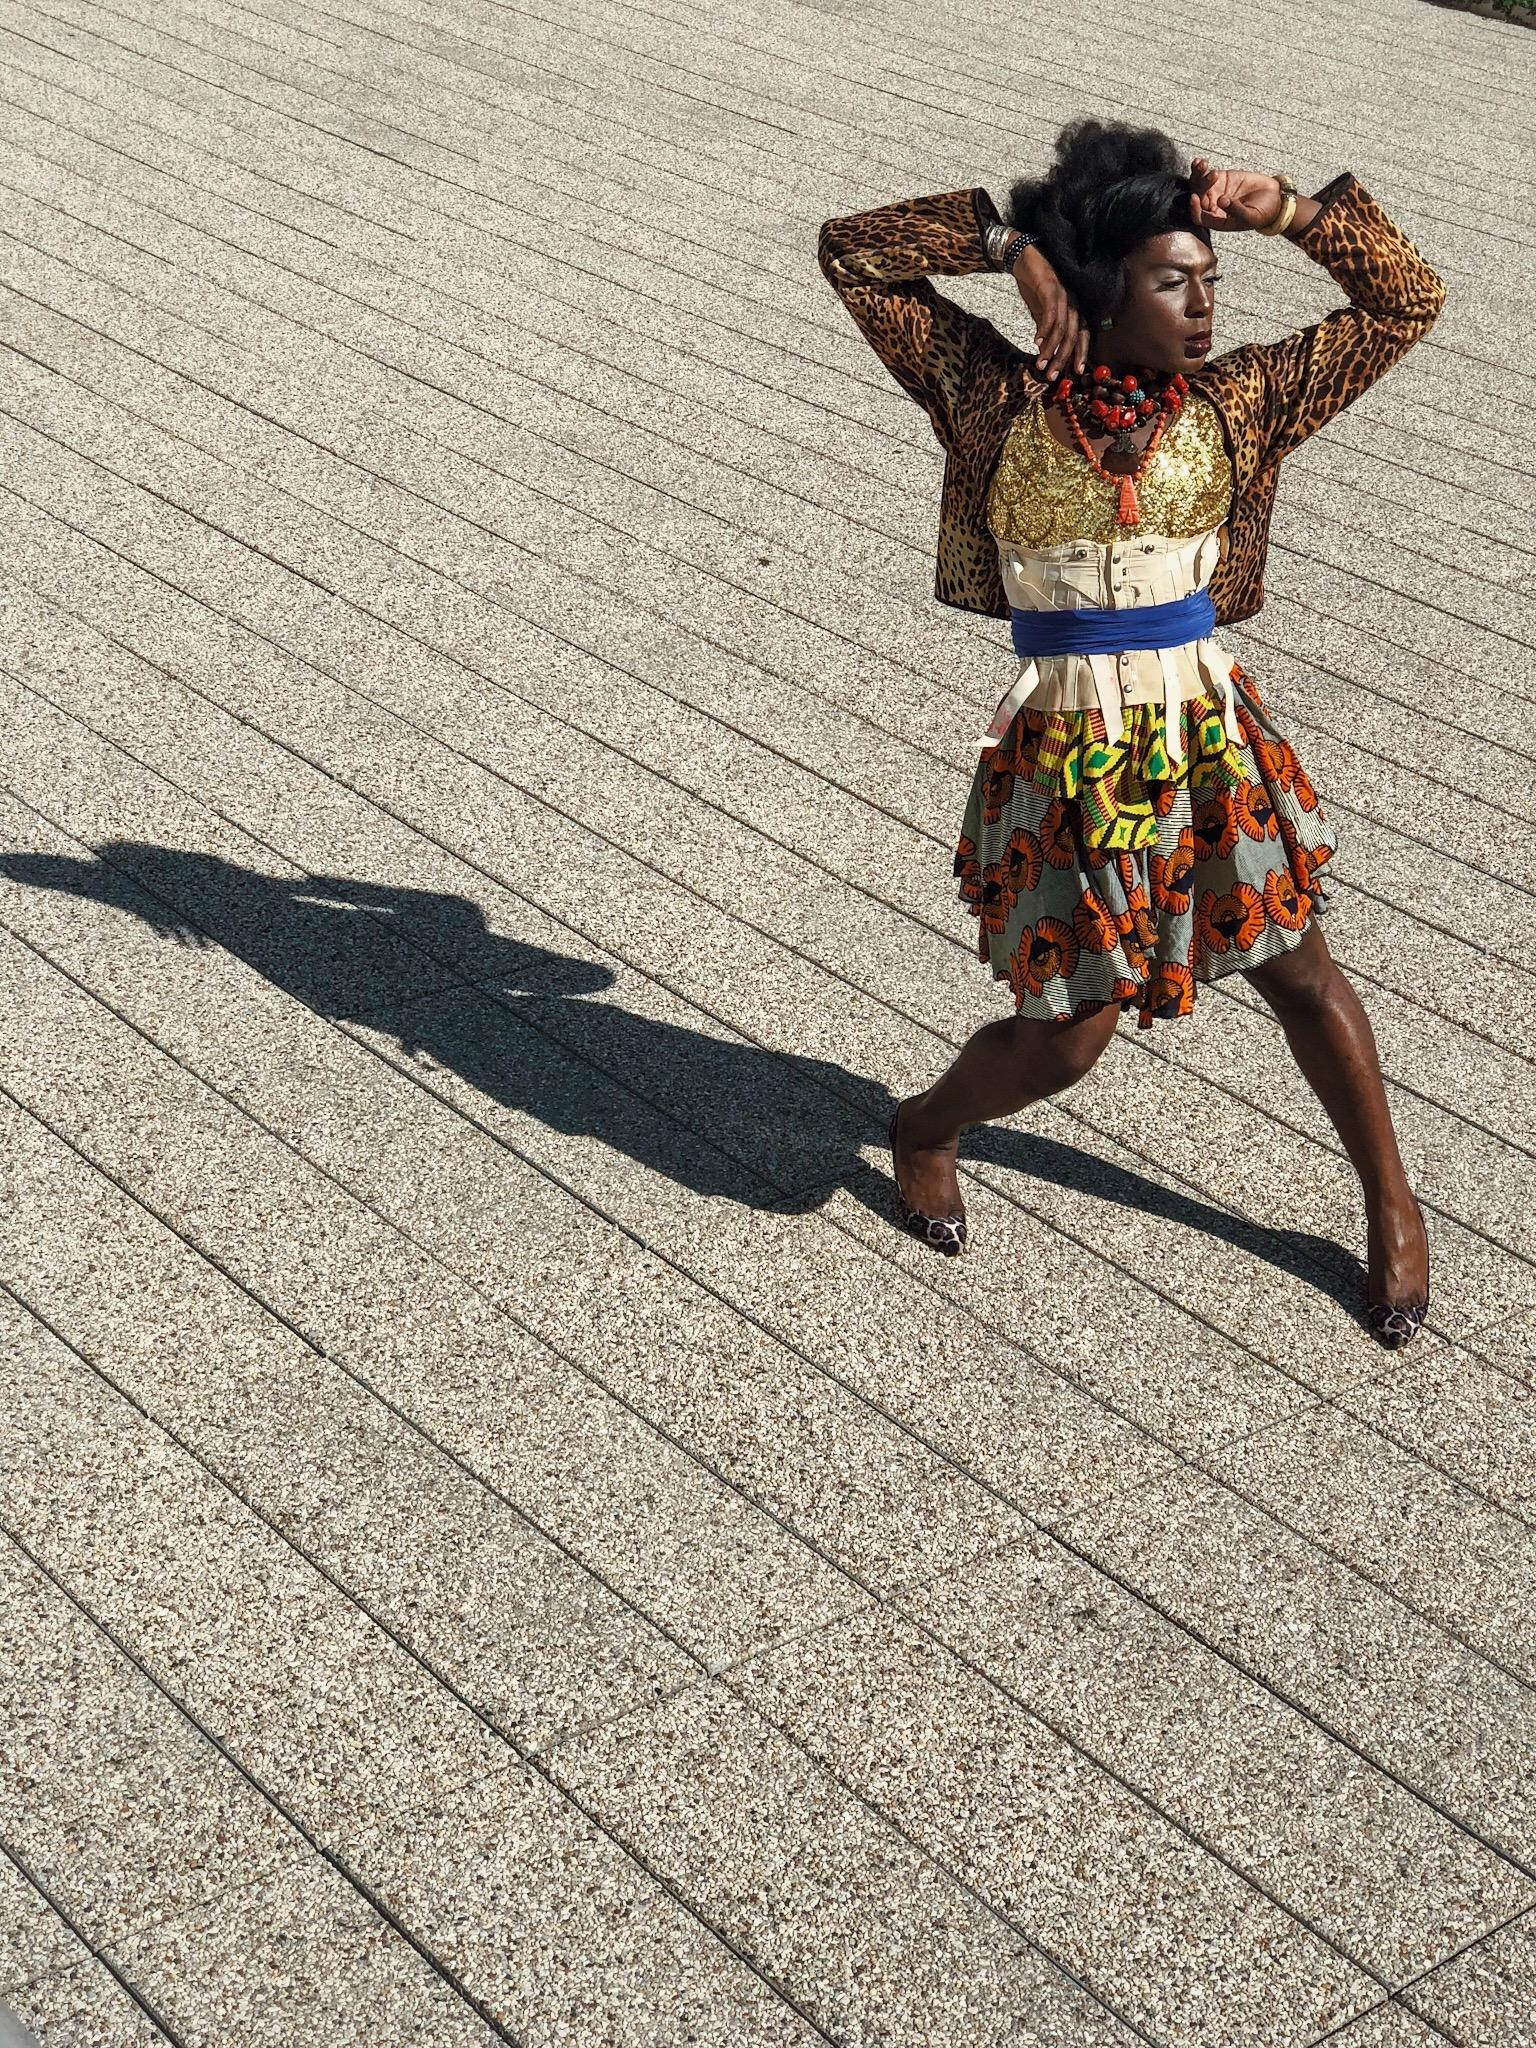 A dark complected person wearing a jacket, corset and many necklaces over an African print dress stands with splayed legs and upraised arms in a bright outdoor space.